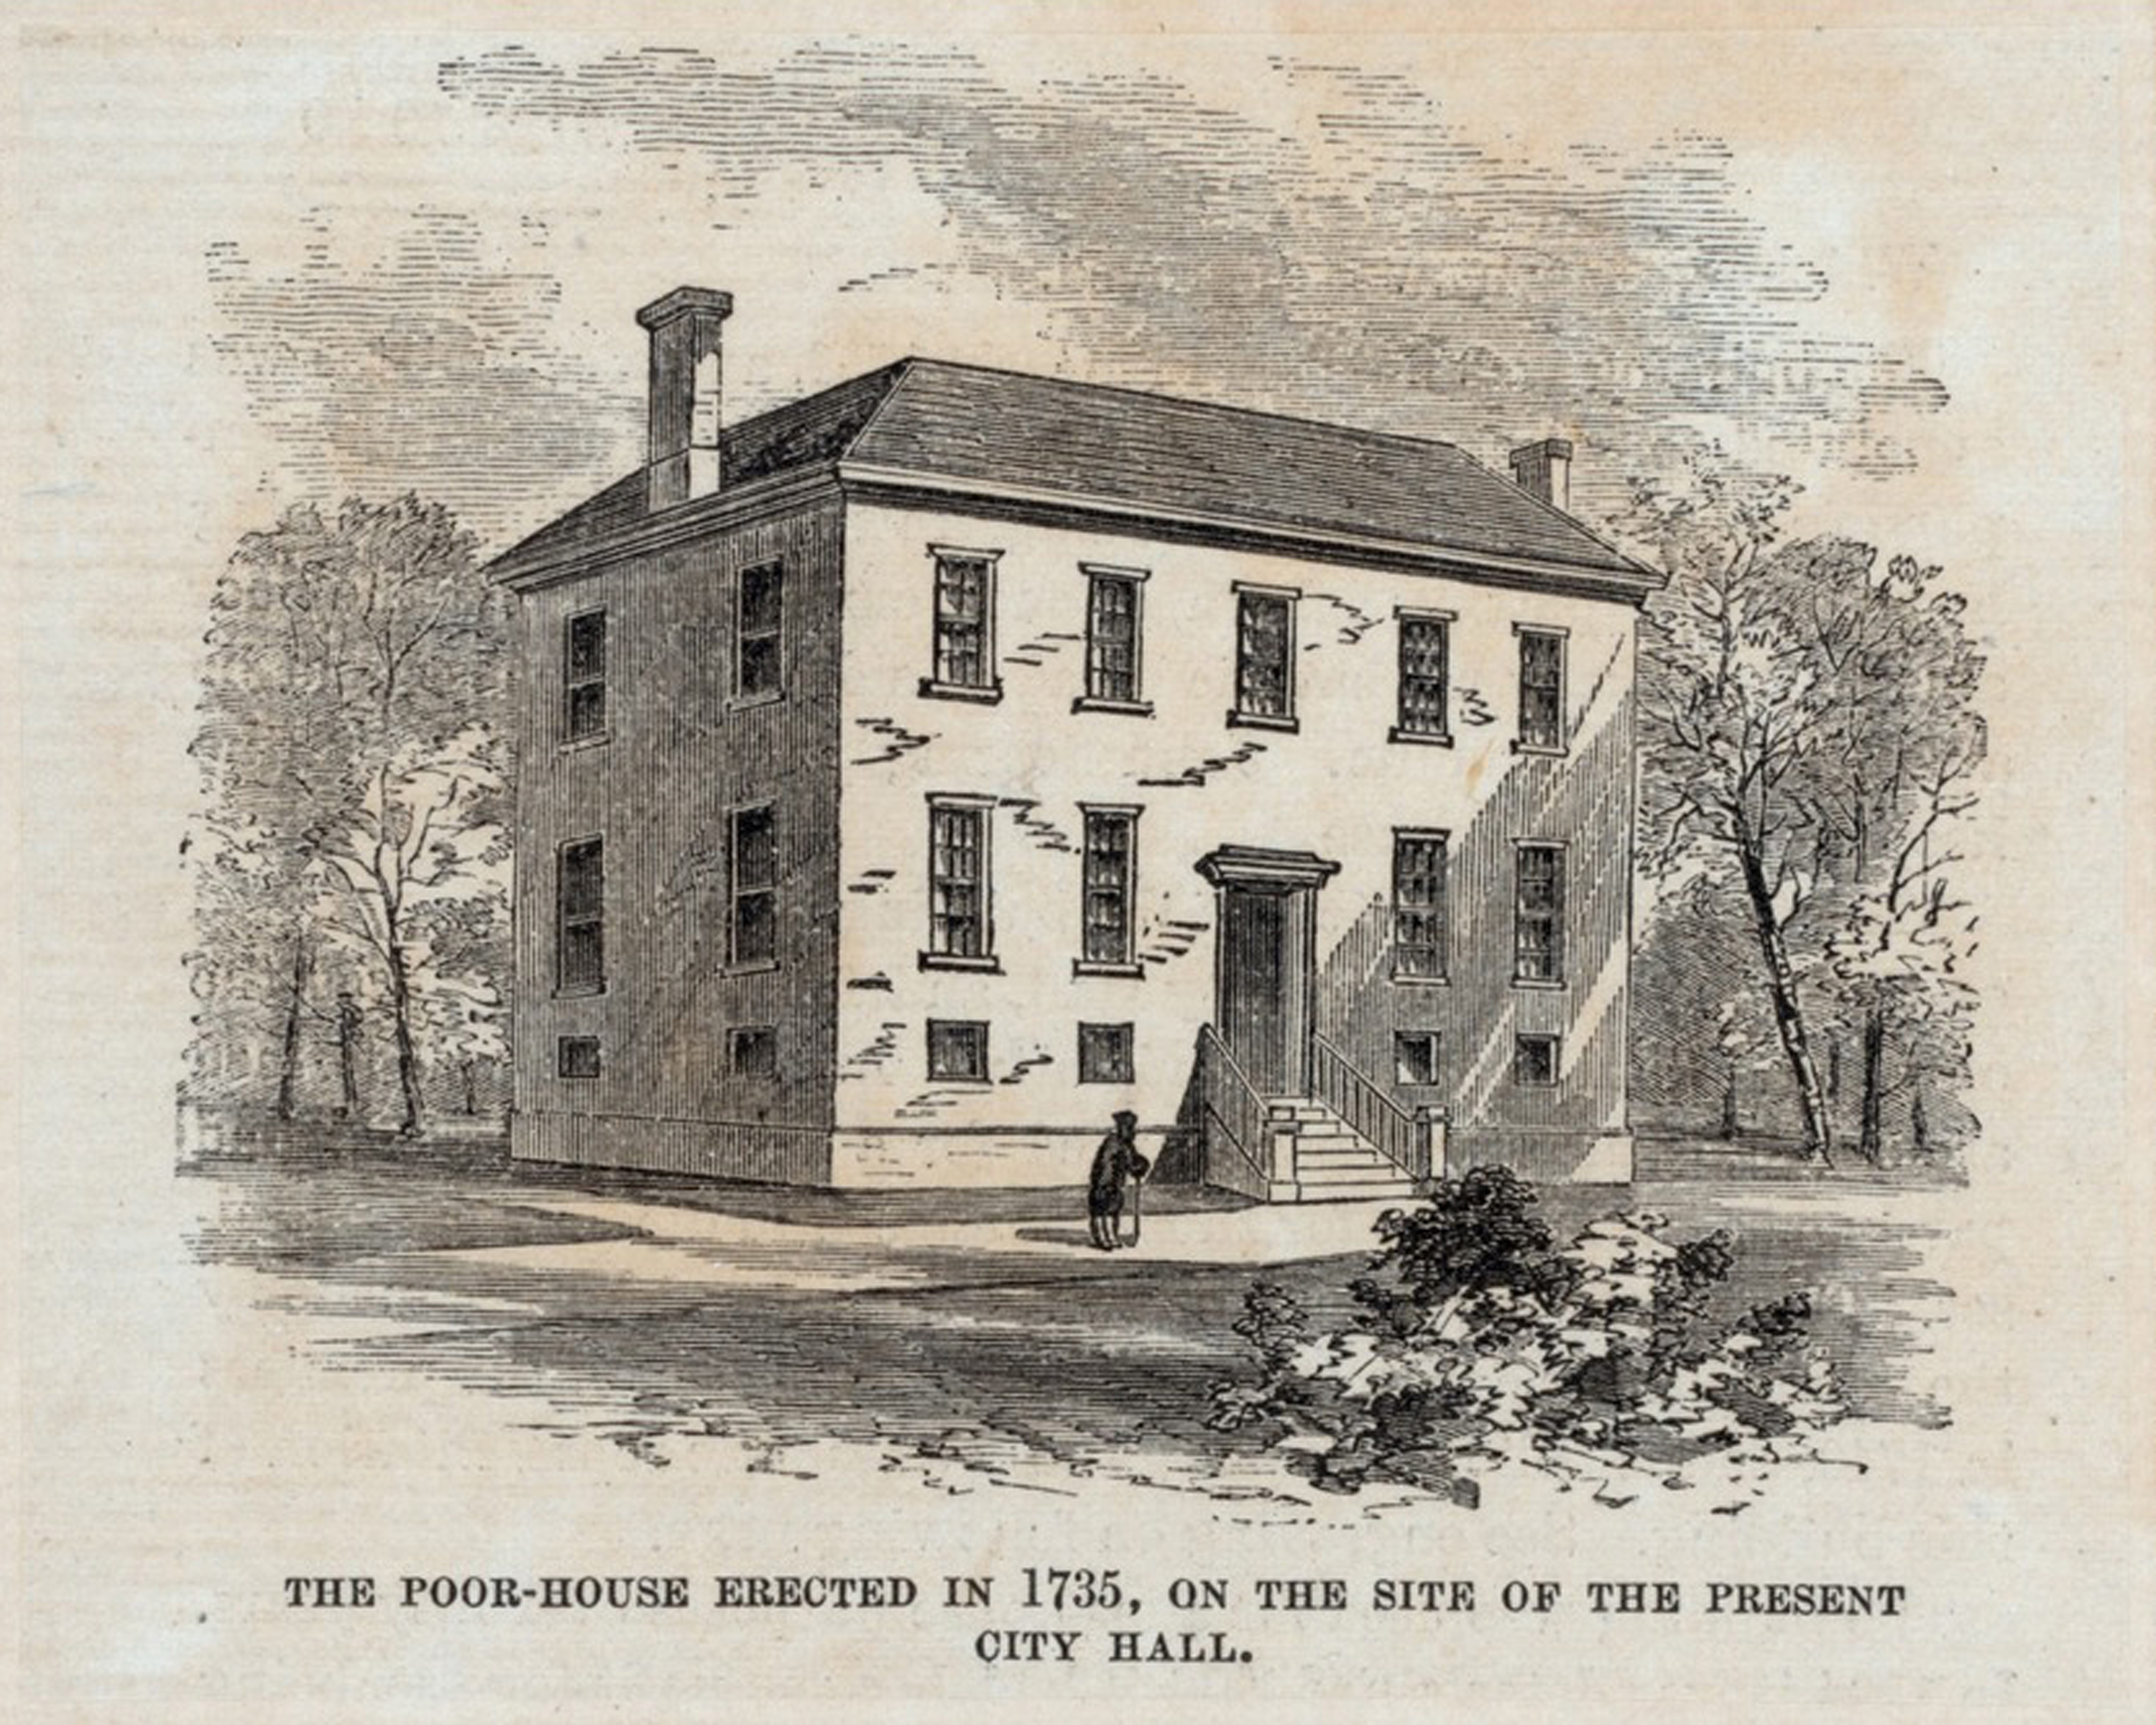 Peculiar Institutions: The Poorhouse in New York State